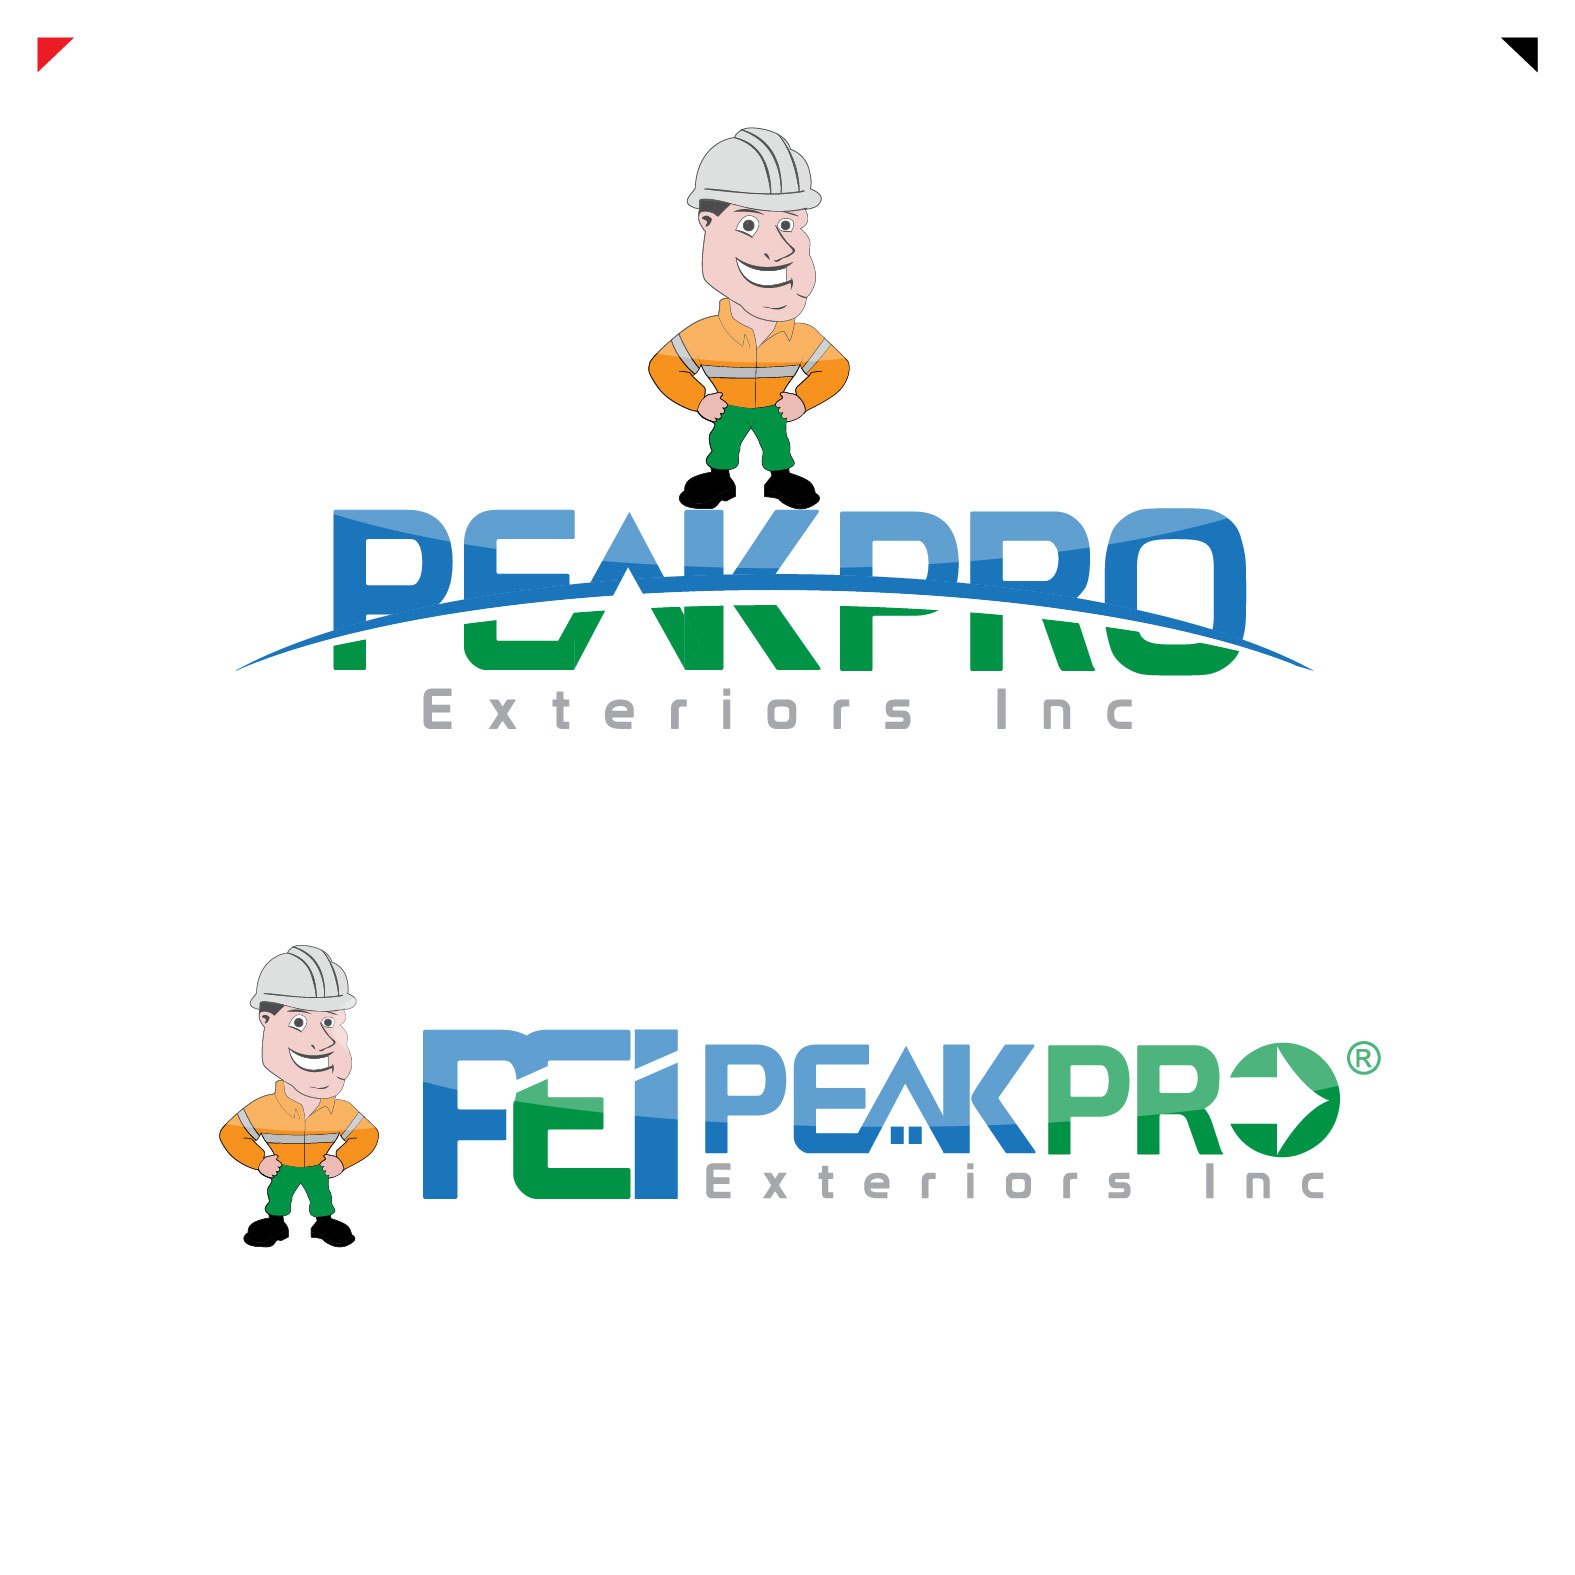 Logo Design by lagalag - Entry No. 53 in the Logo Design Contest Captivating Logo Design for Peakpro Exteriors Inc..